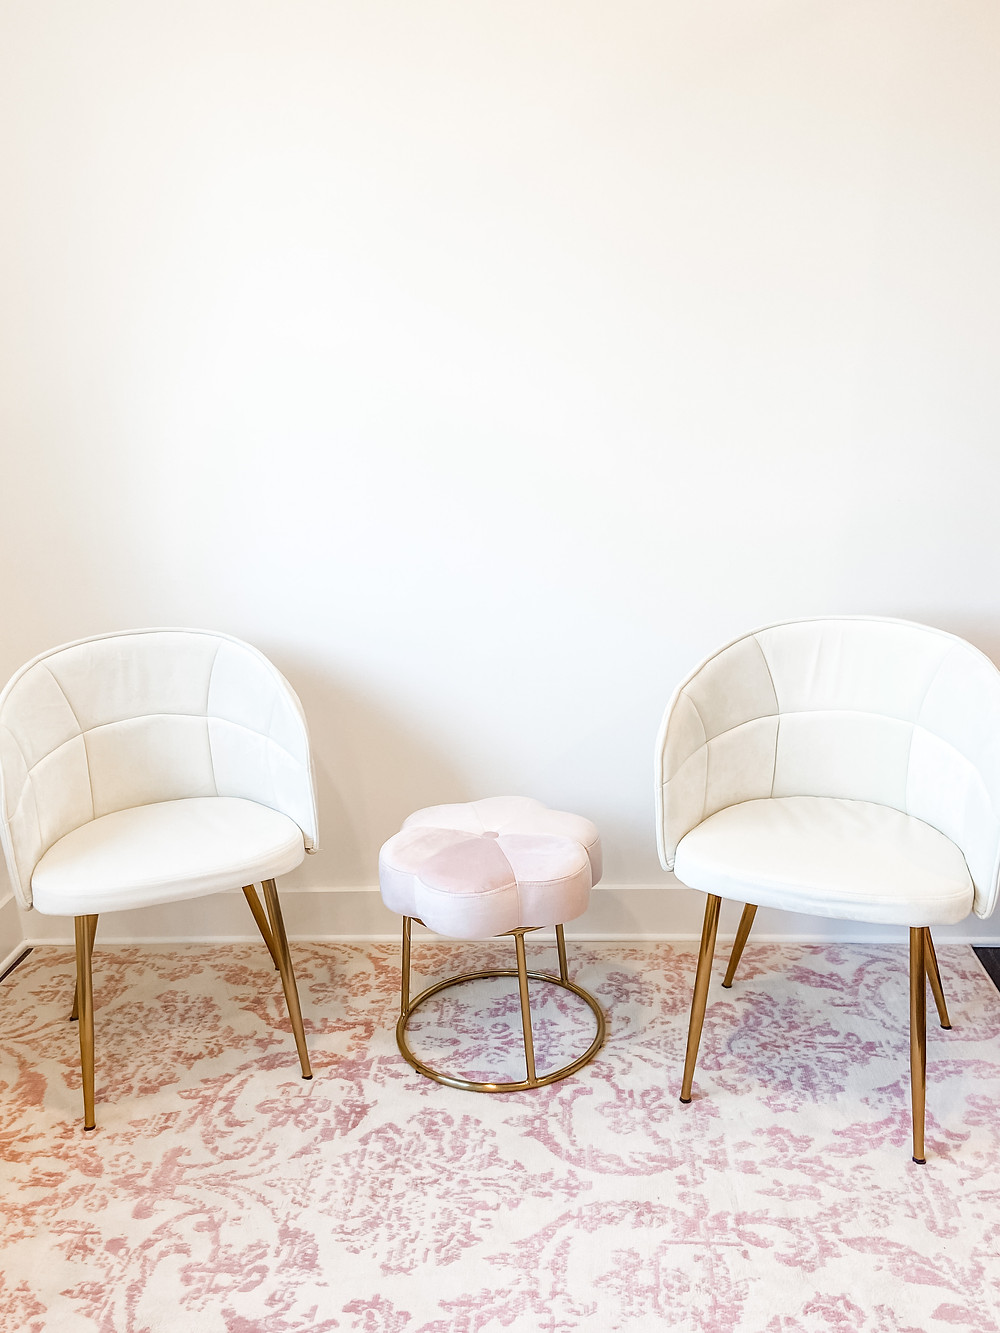 sitting area in tebault bridal boutique with white chairs and a lovely pink persian rug and side table